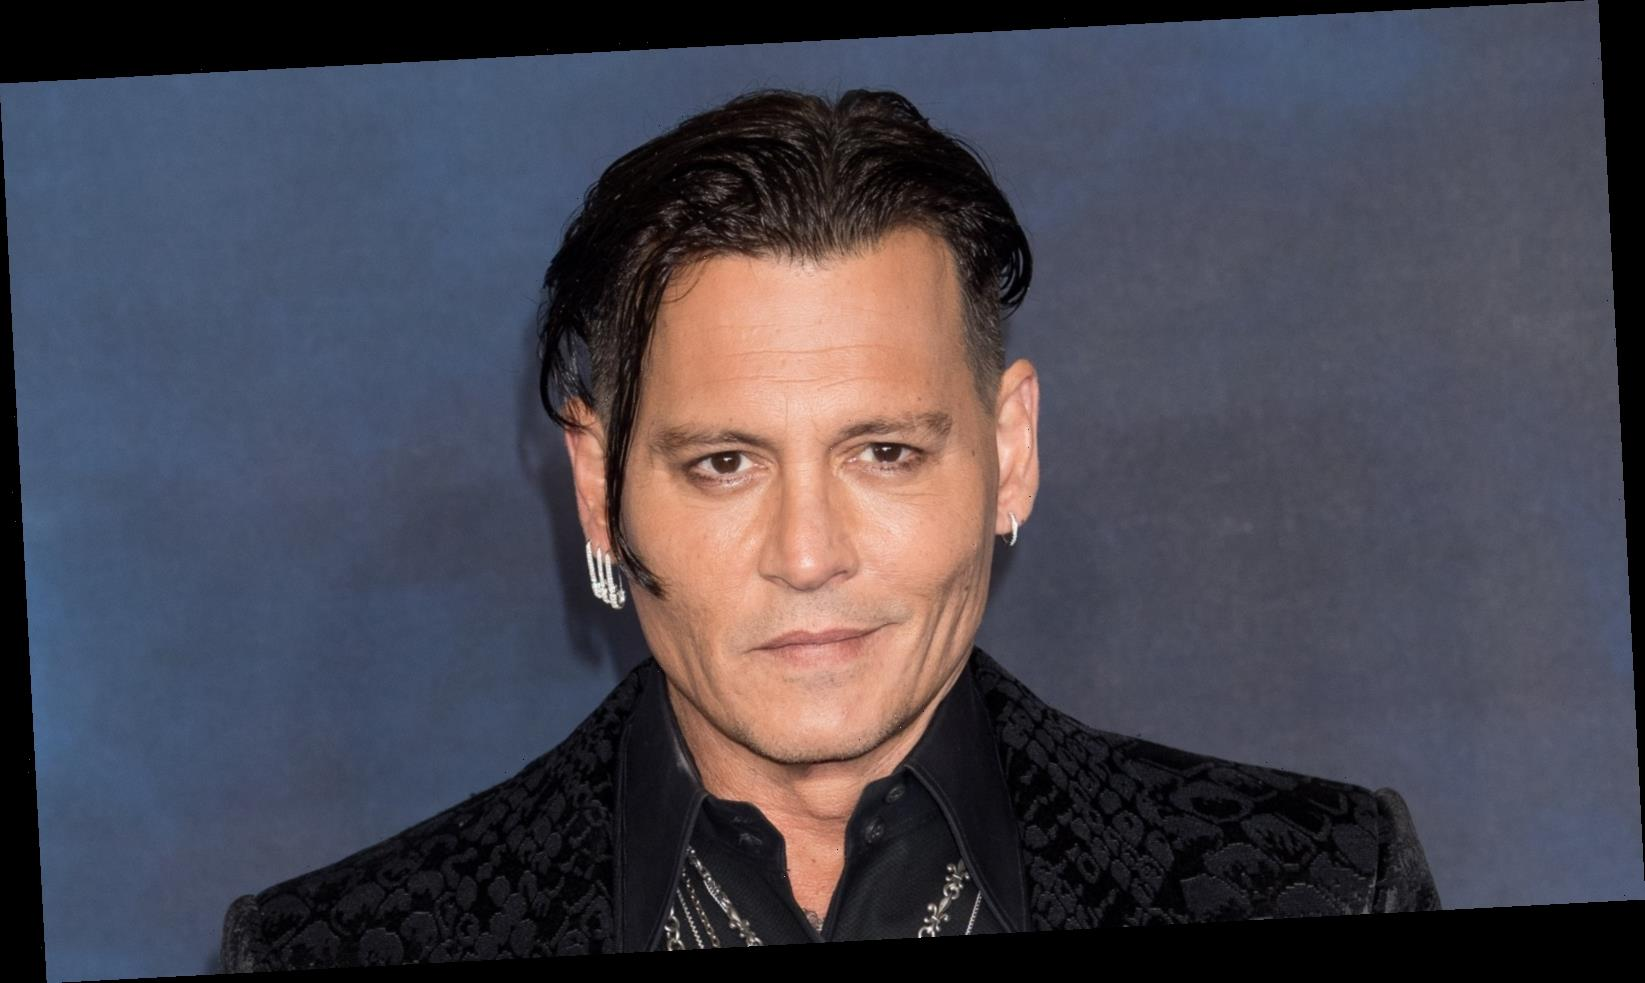 The real reason Johnny Depp is dropping out of Fantastic Beasts